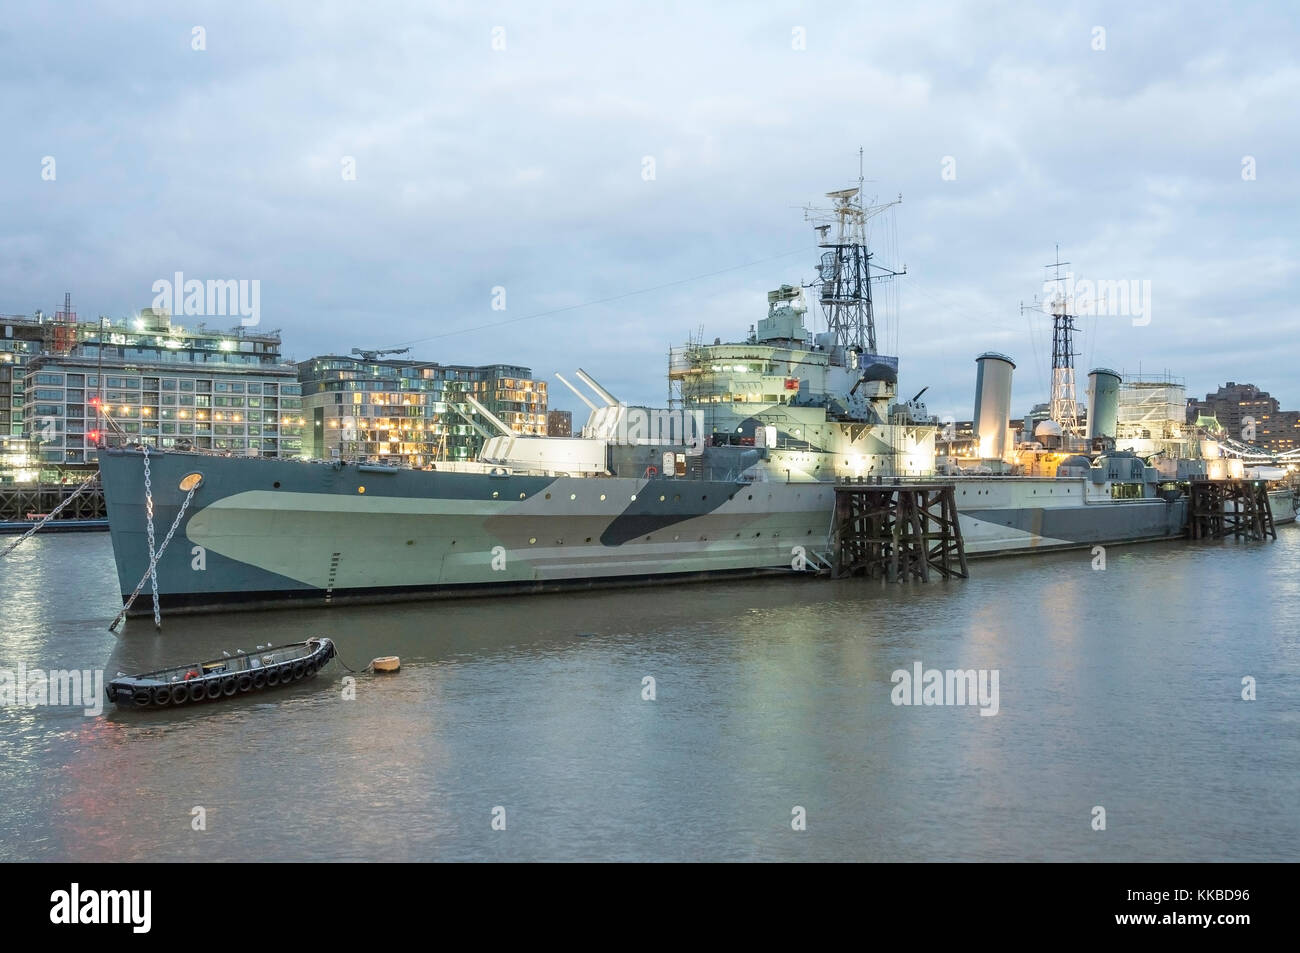 HMS Belfast Museum Ship, The Queen's Walk, Southwark, The London Borough of Southwark, Greater London, England, - Stock Image